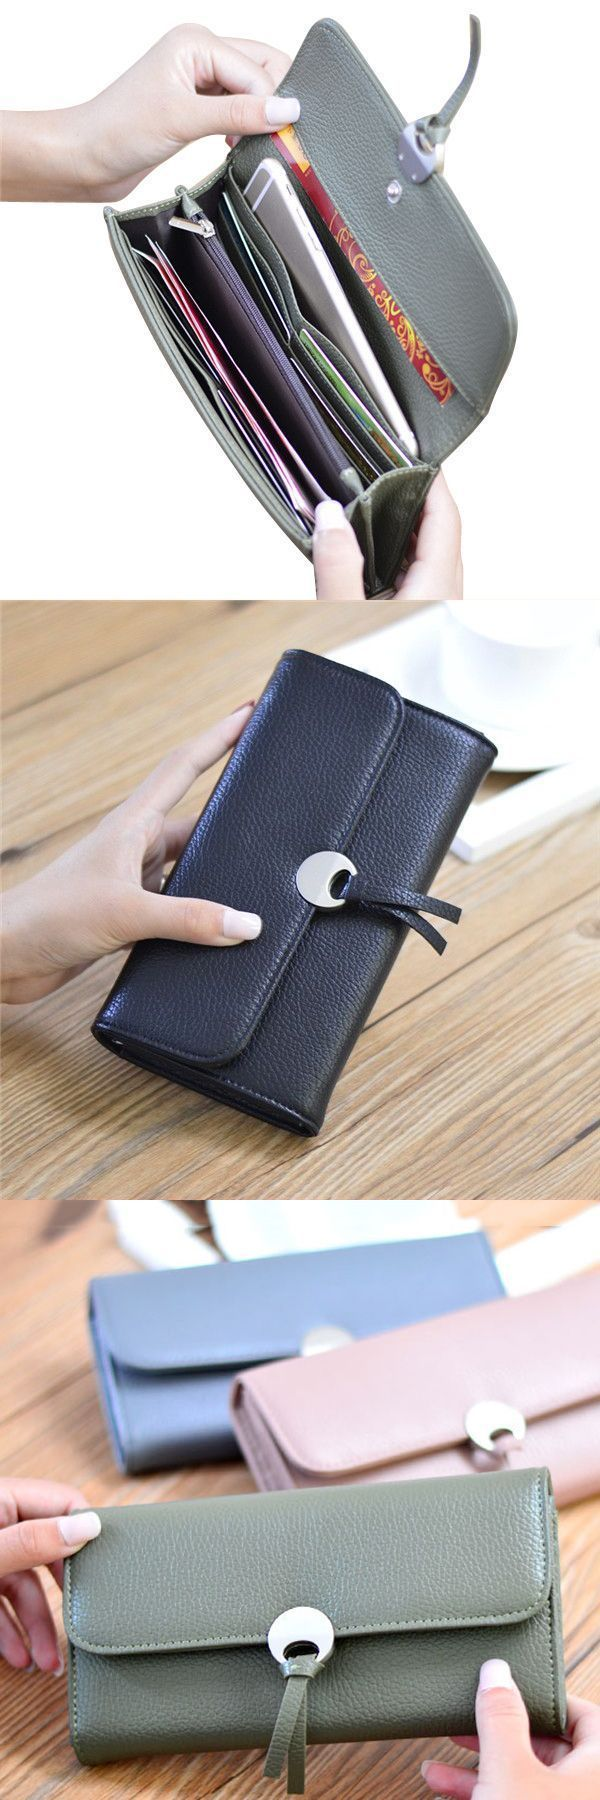 Wallets under 20 lichee pattern hasp long wallet 3 folded purse card holder coin bags 5.5#8221; phone case for iphone 7p #31 #wallets #reviews #dosh #wallets #09 #series #i #santi #wallets #wallets #house #of #fraser